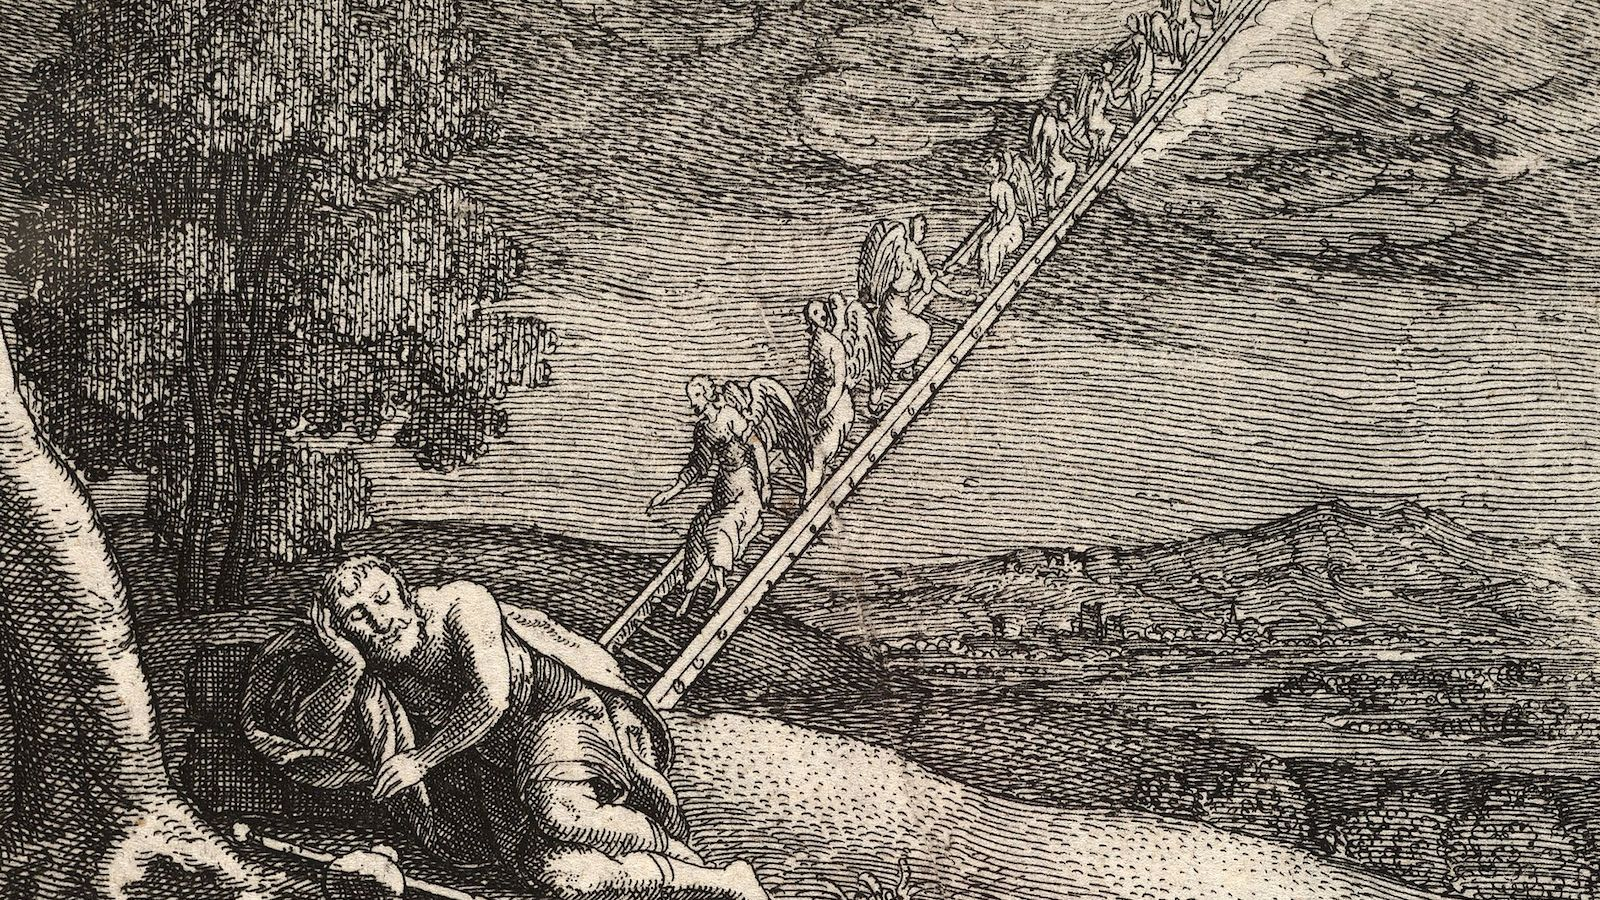 Understanding Jacobs Ladder My Jewish Learning